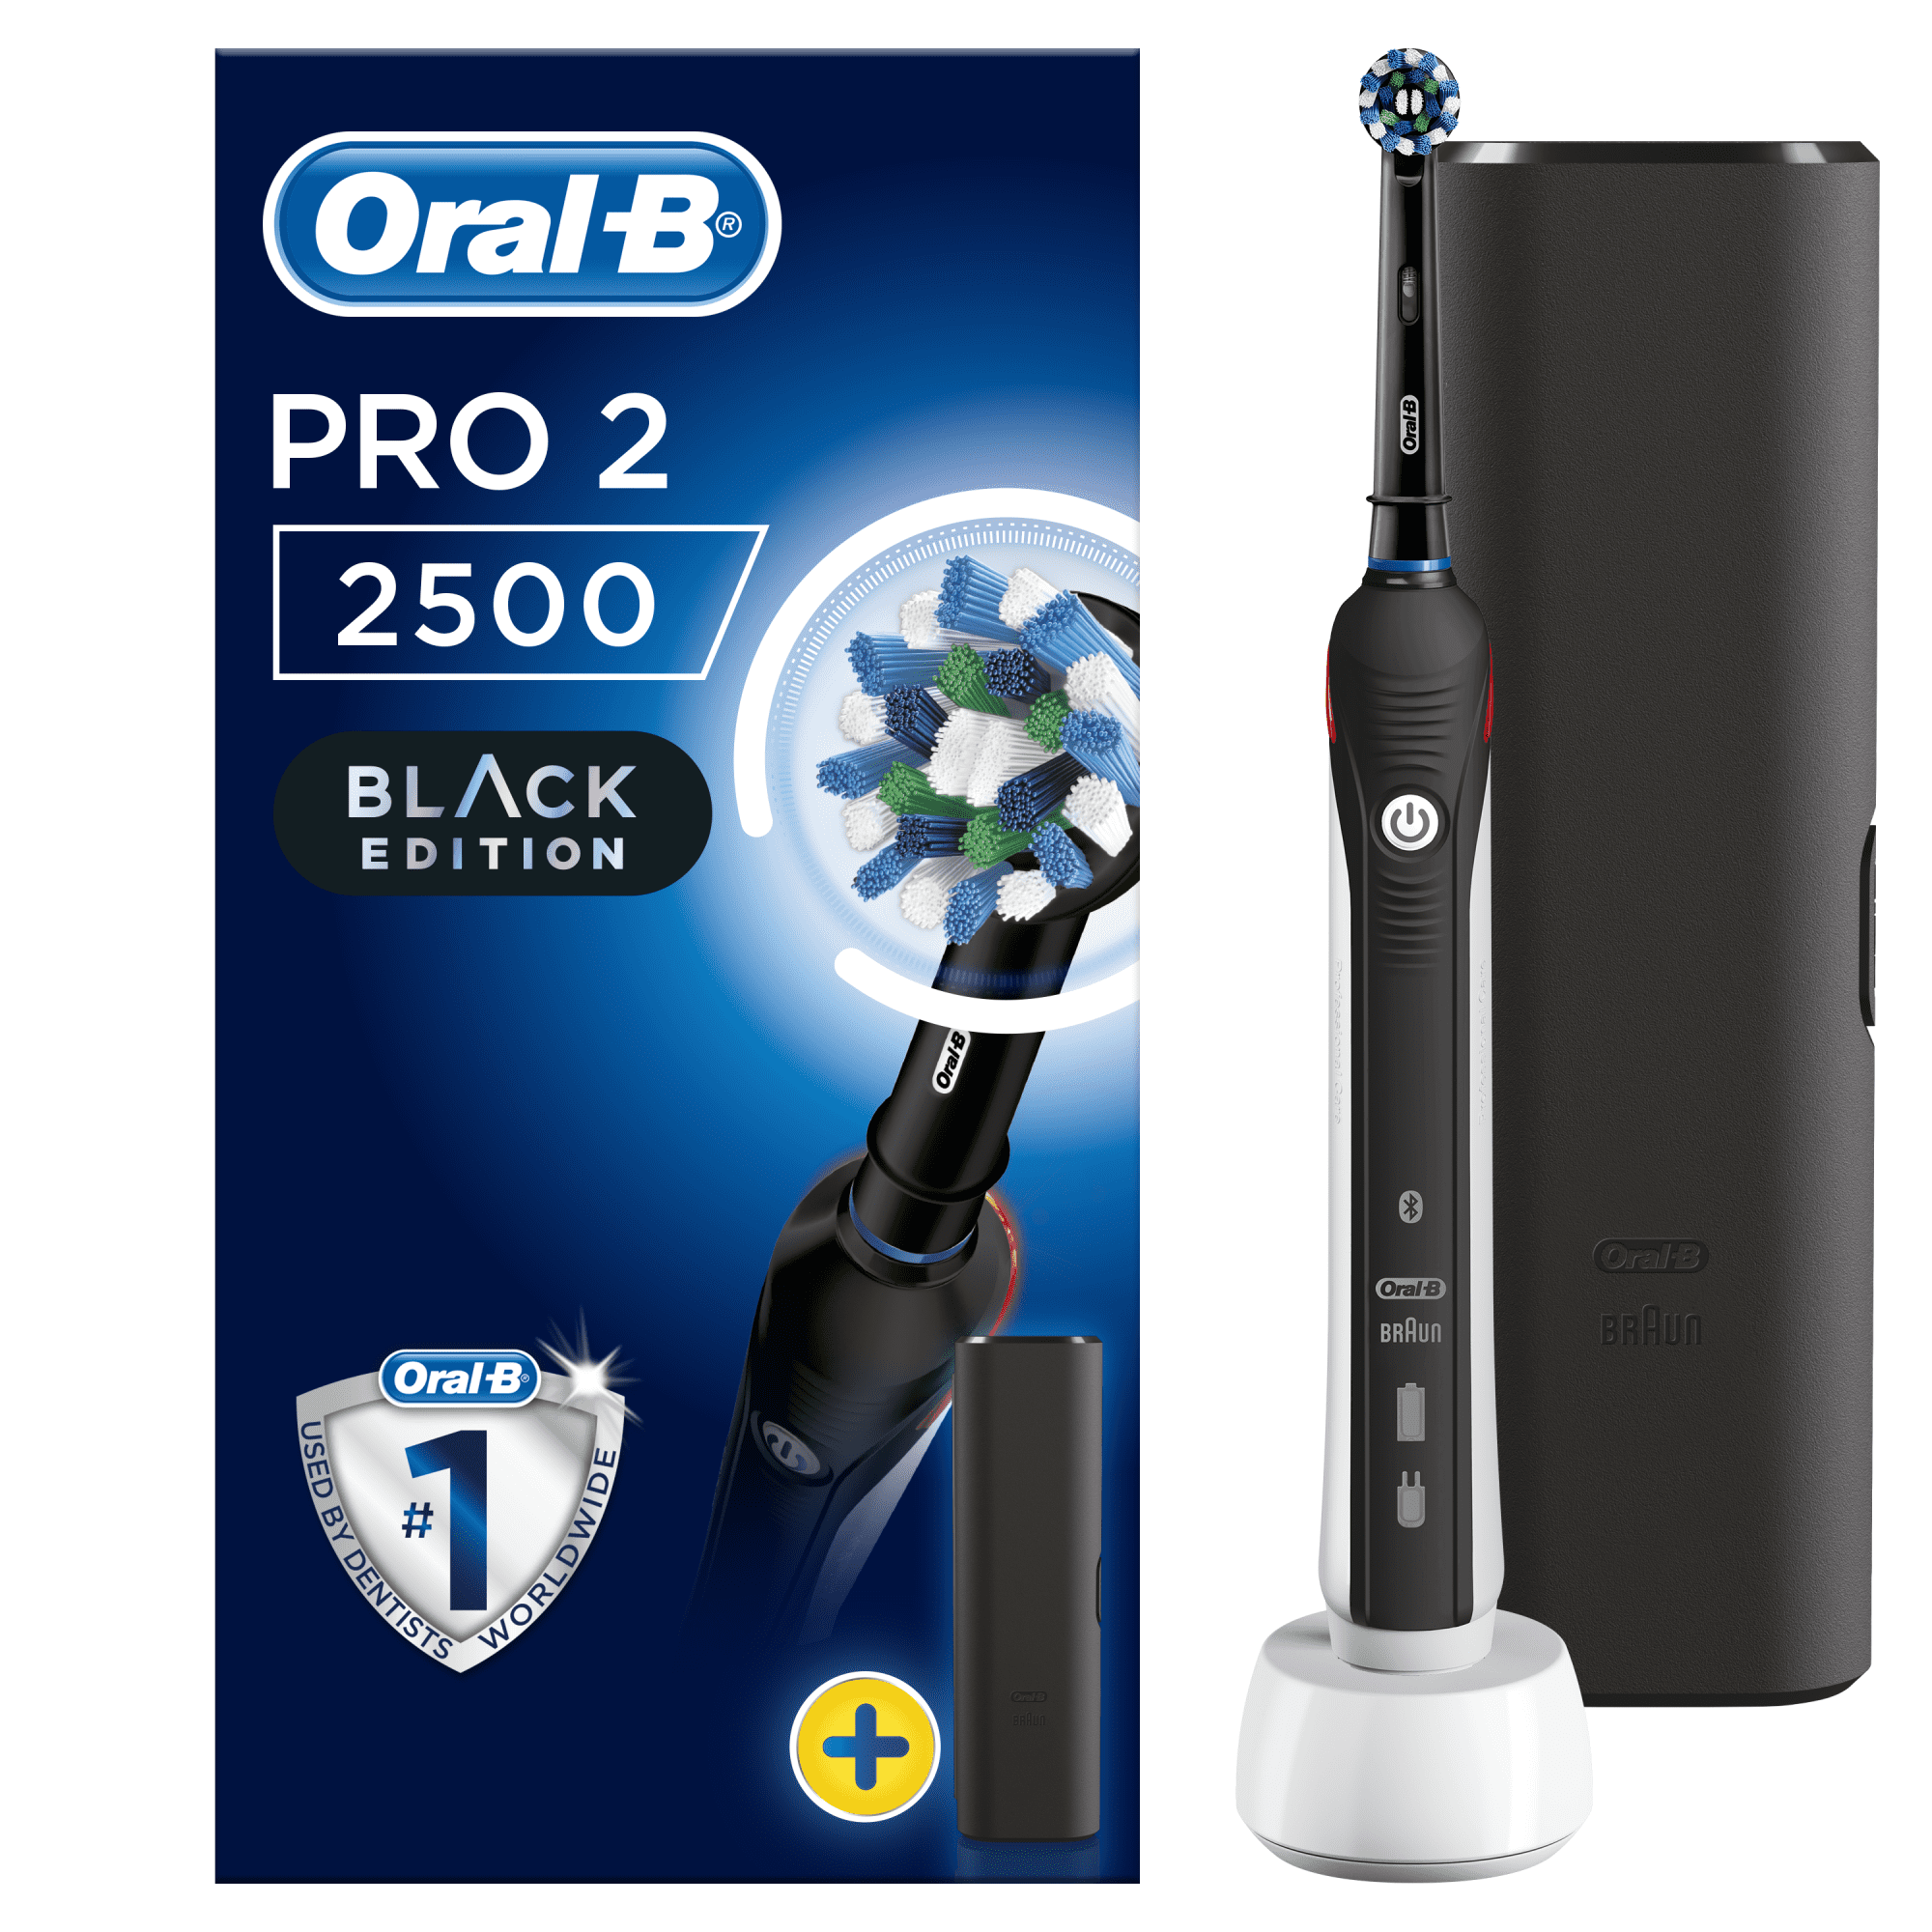 Oral-B Pro 2 2500 Black Edition Cross Action